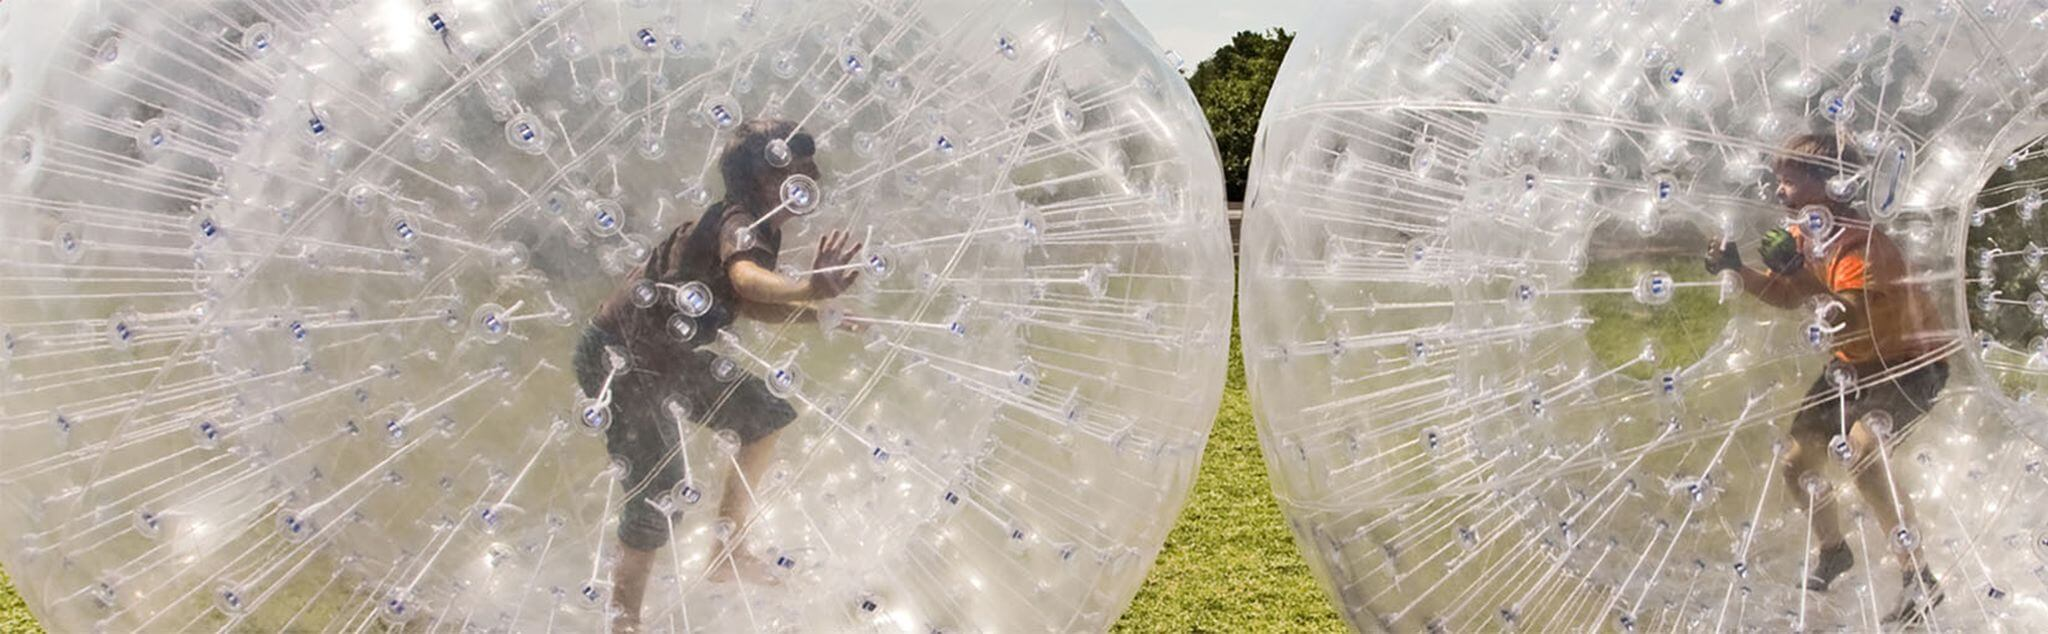 Zorbing in City of Edinburgh